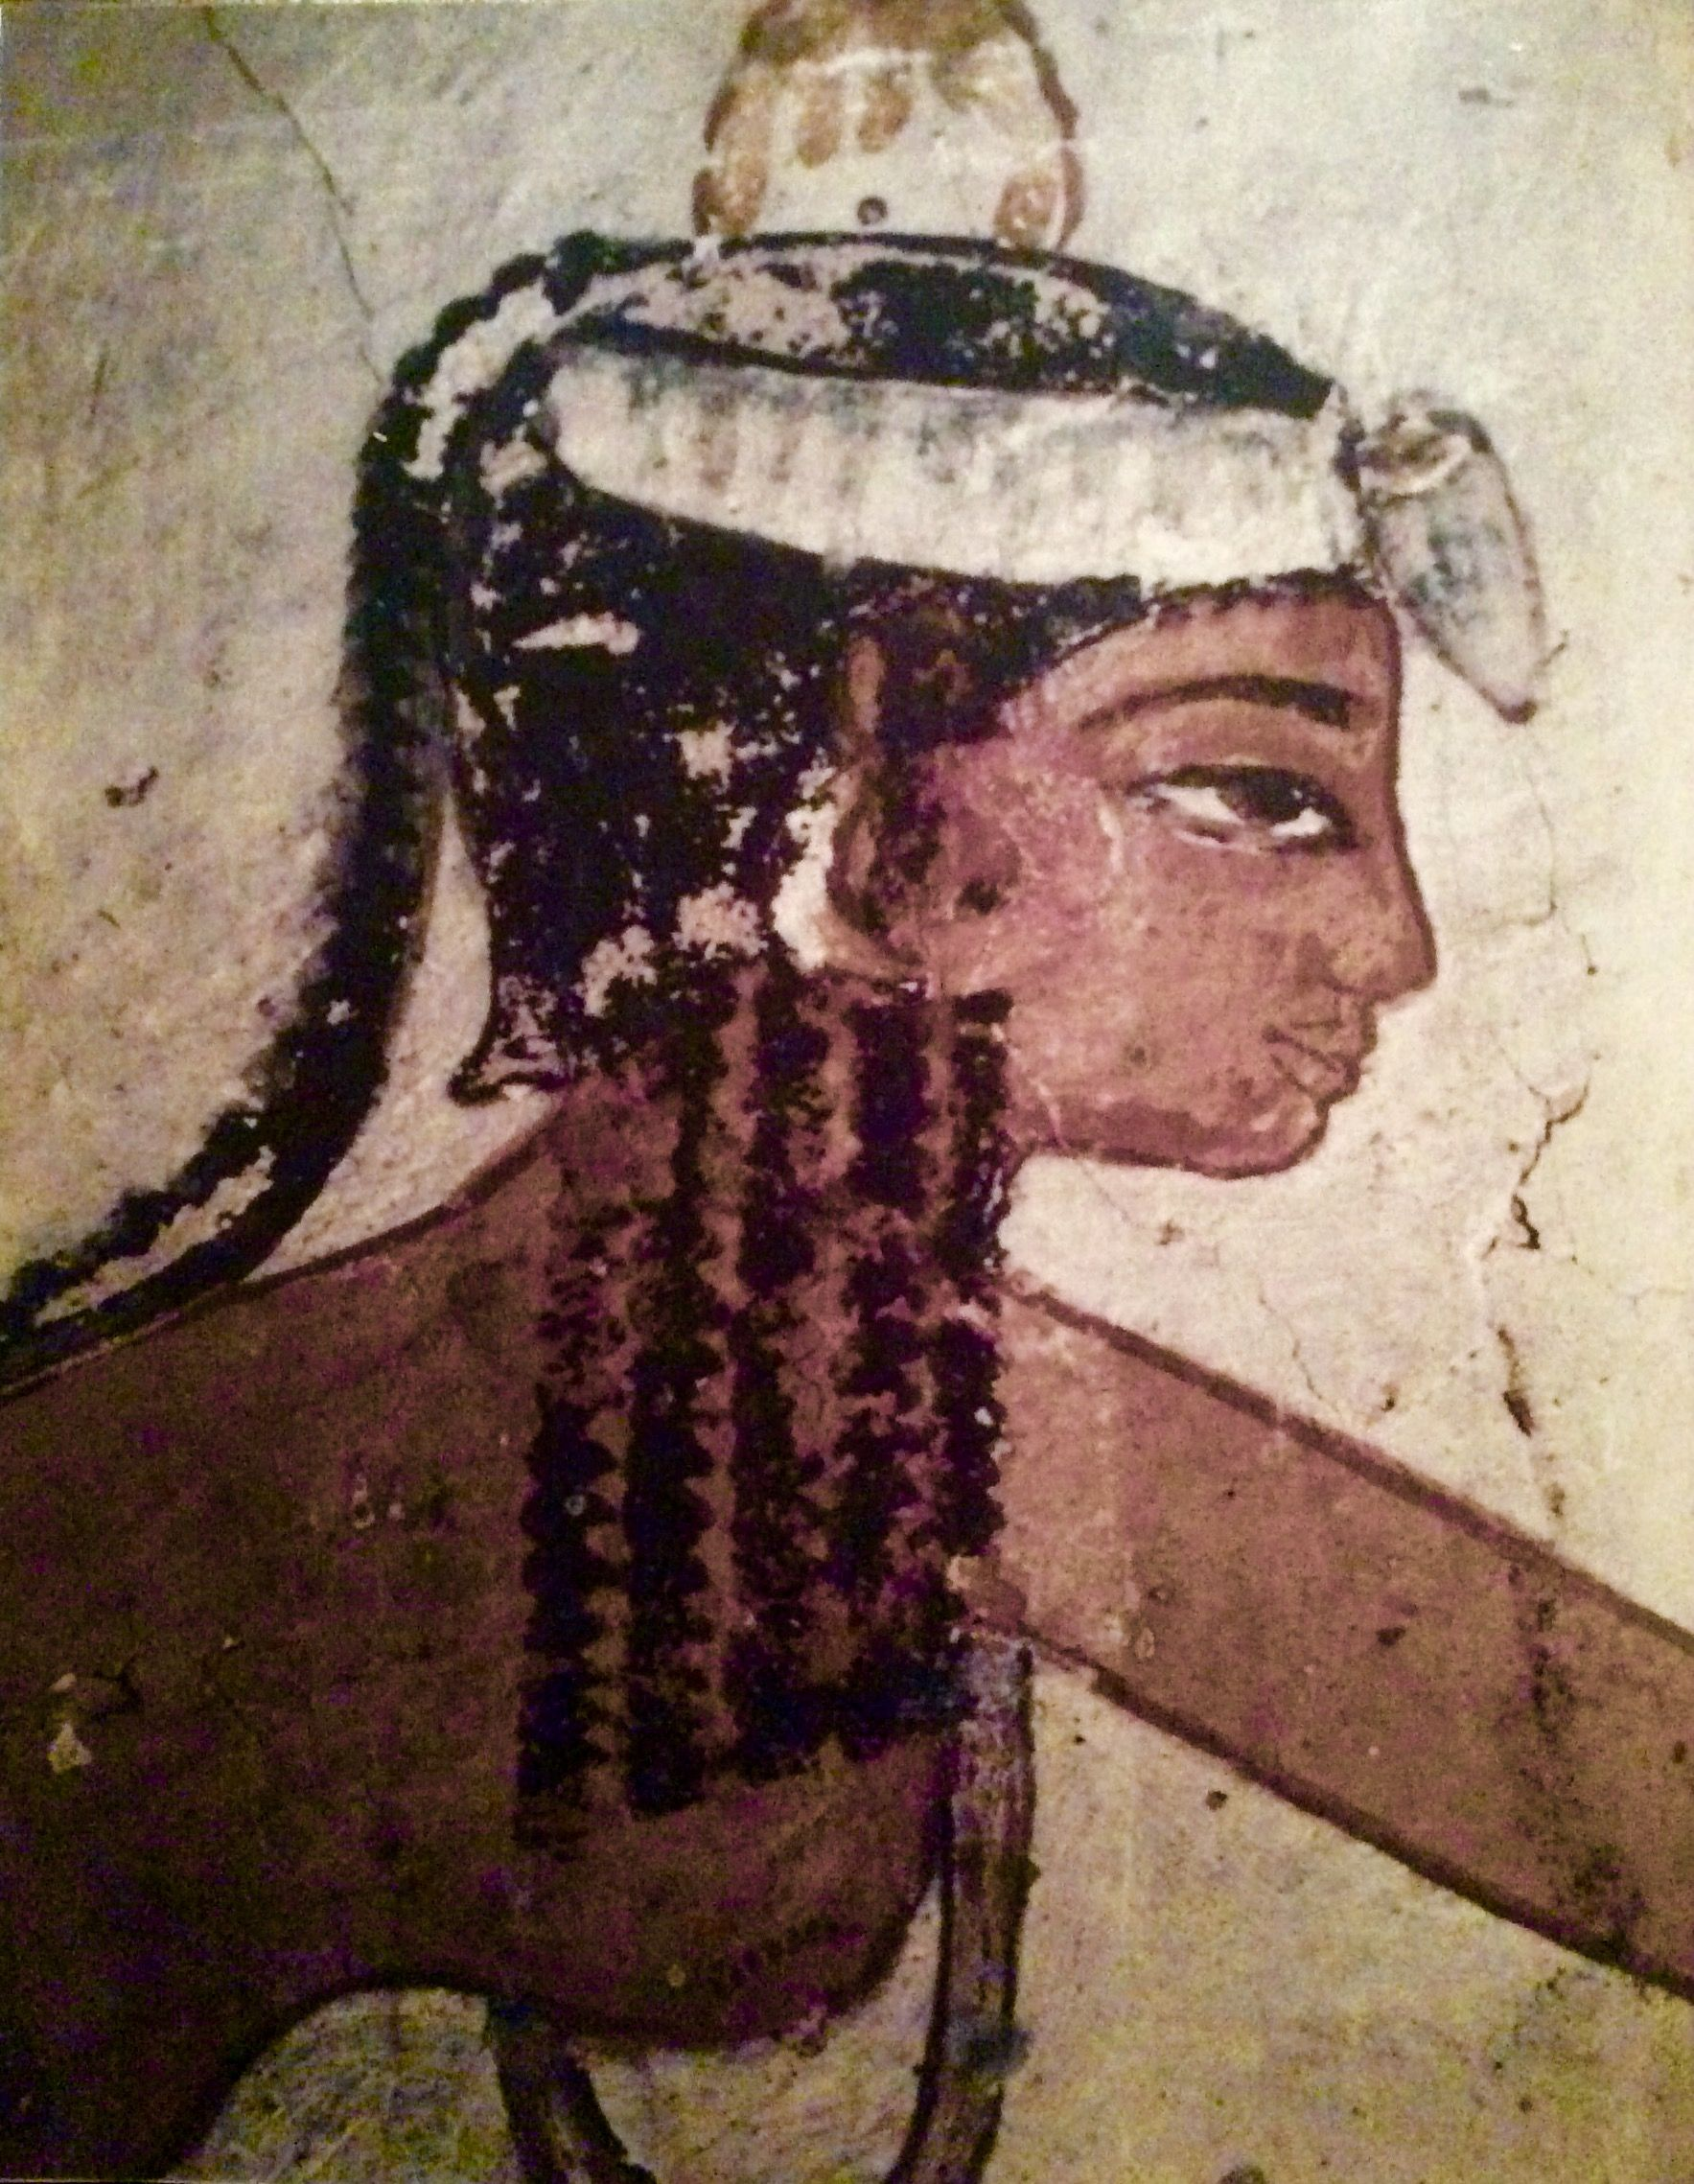 Teenaged Banquet Attendant From The Tomb Of Djeser -8325